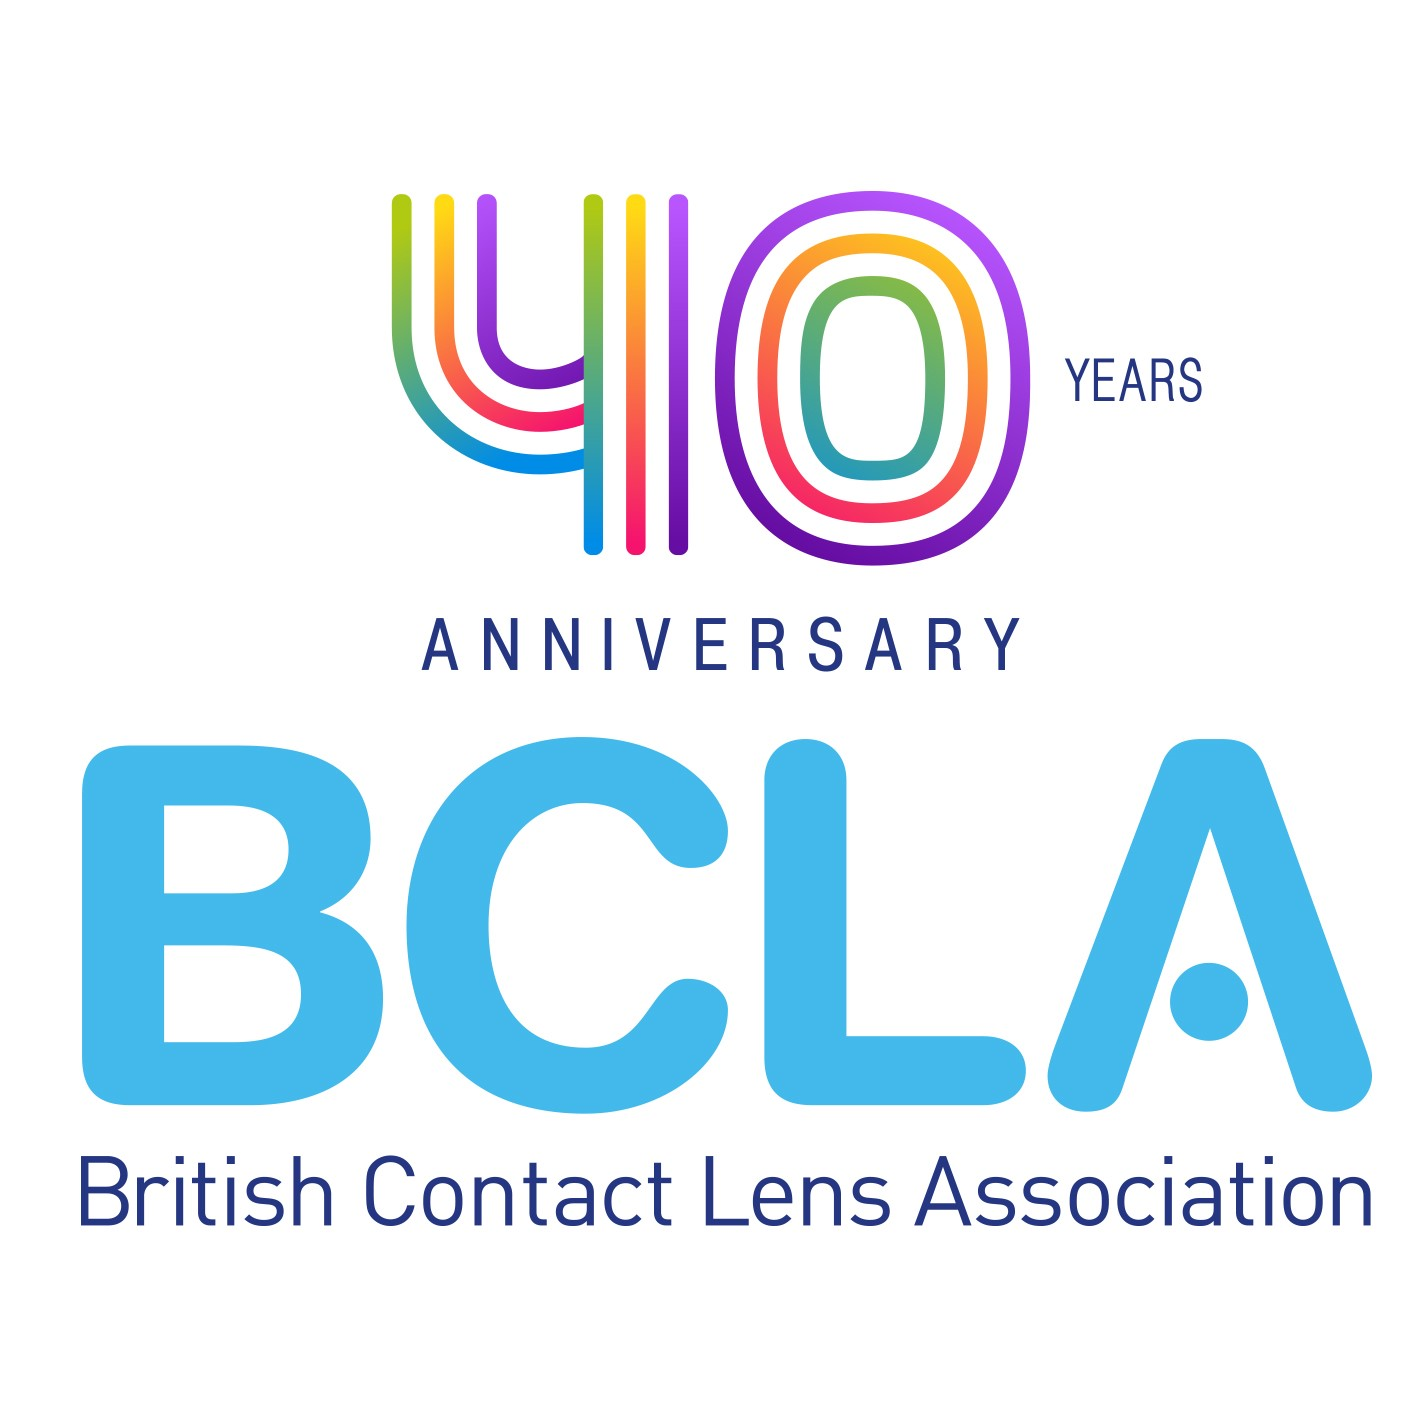 BCLA Clinical Conference and Exhibition